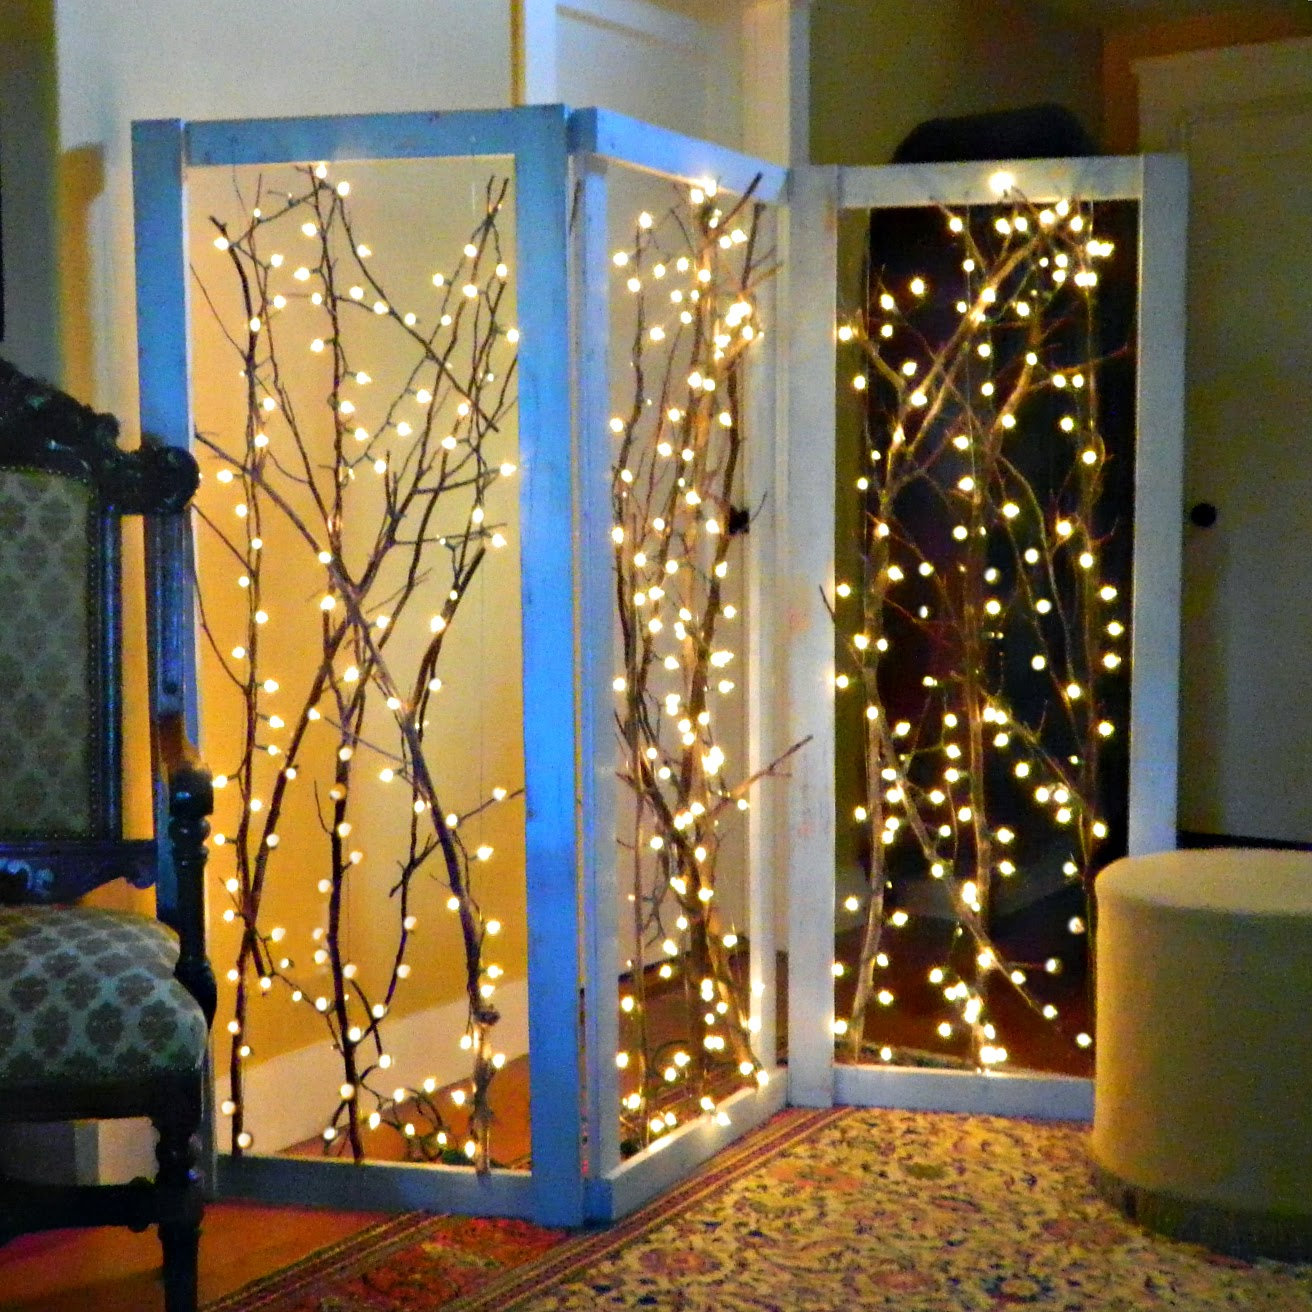 Mark montano twinkling branches room divider diy for How to light up a room